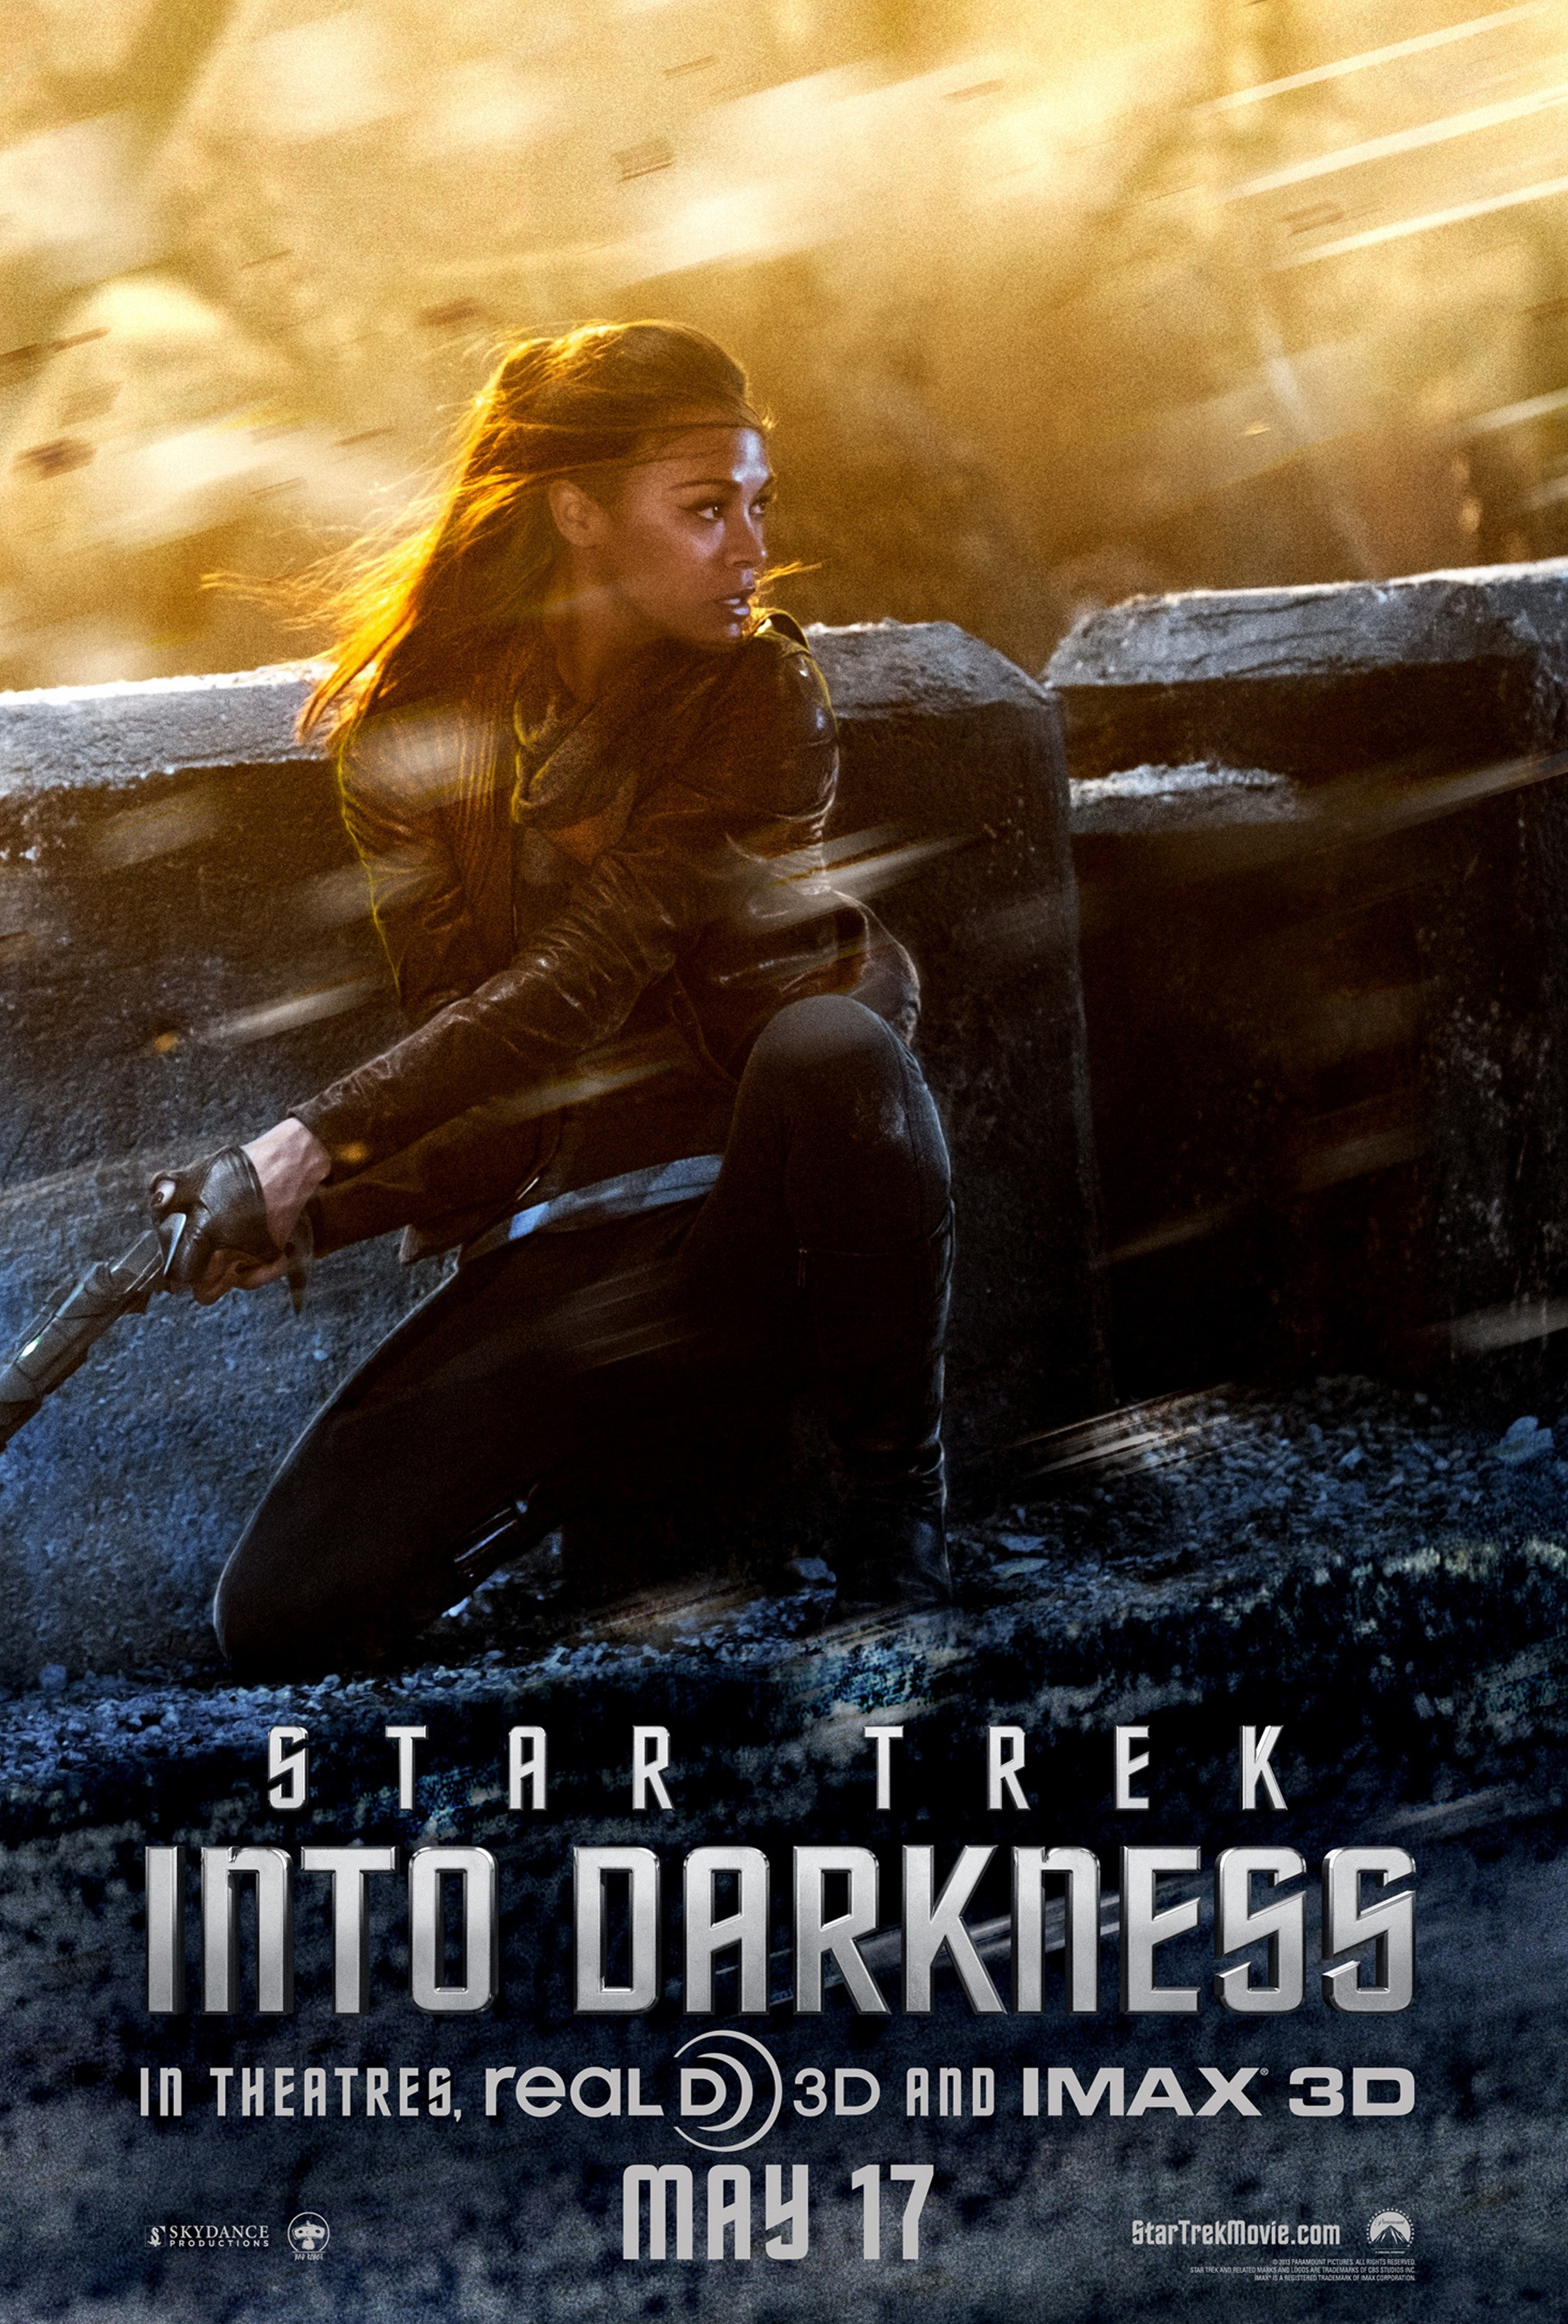 Star Trek Into Darkness - Poster - 005